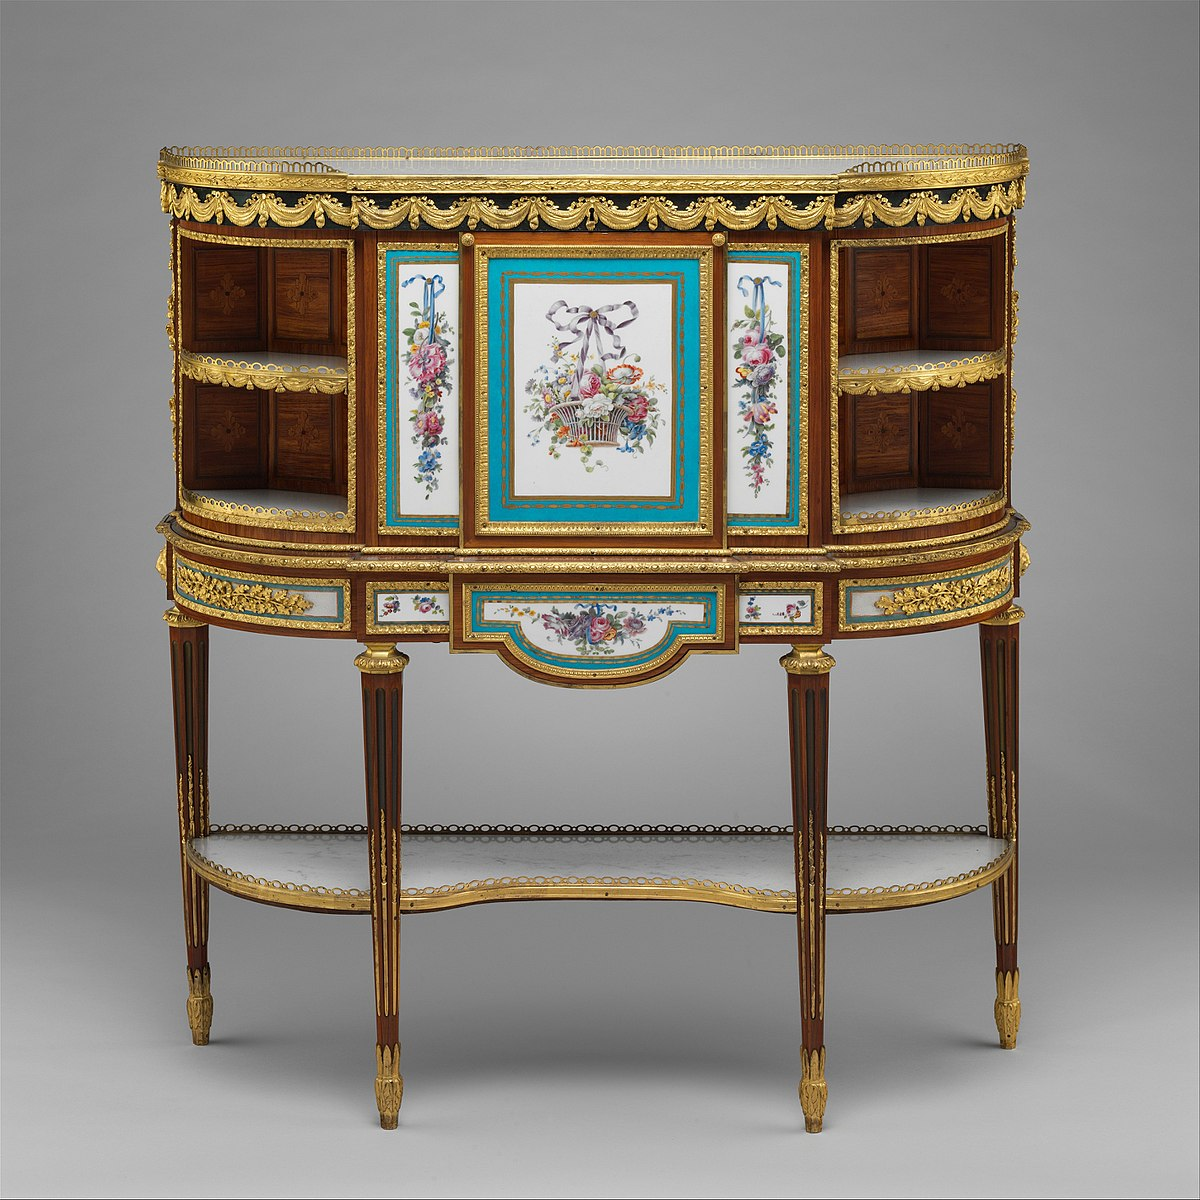 Furniture: Louis XVI Furniture